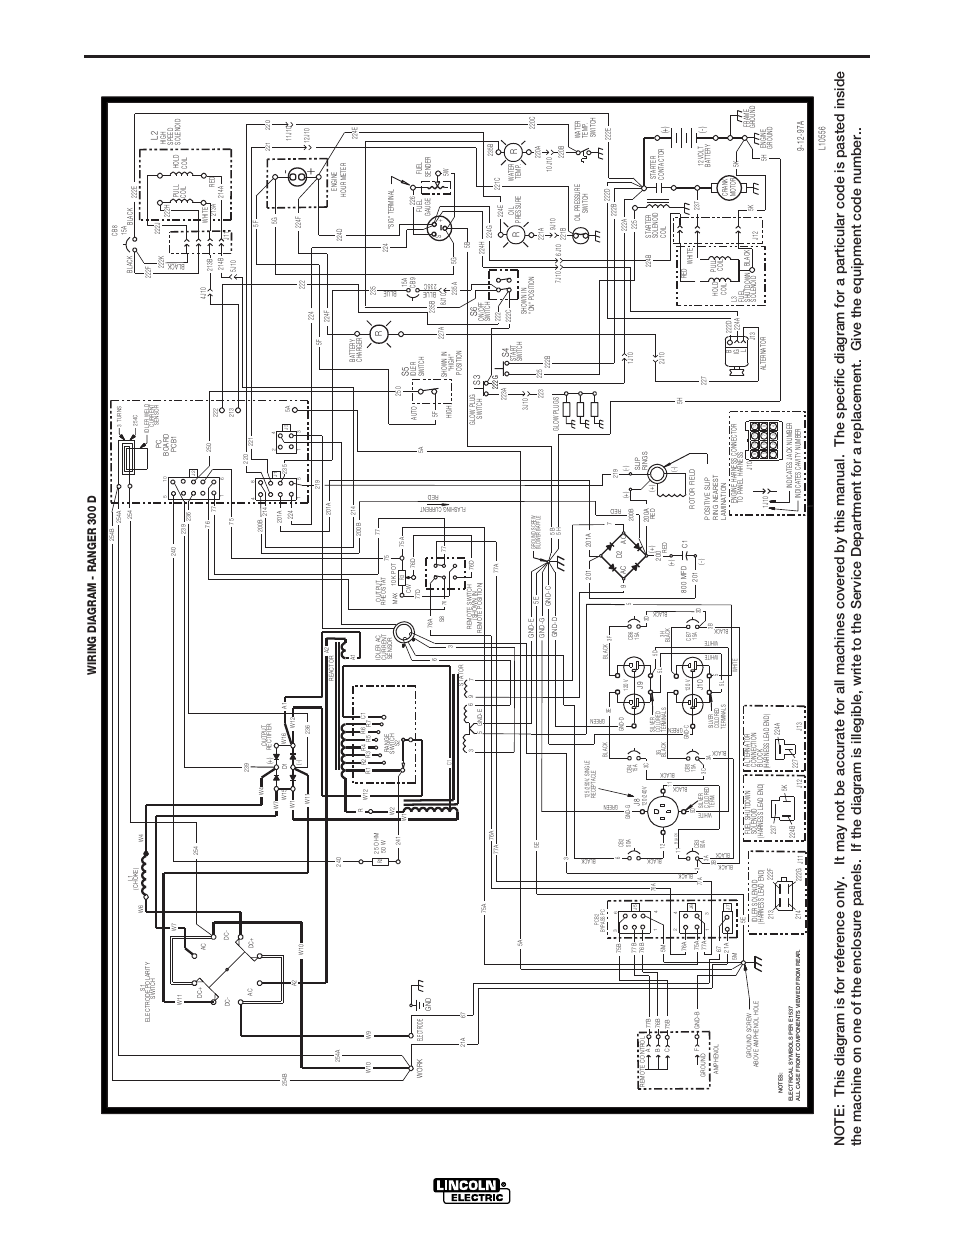 Lincoln Electric Wiring Diagram Wiring Diagram